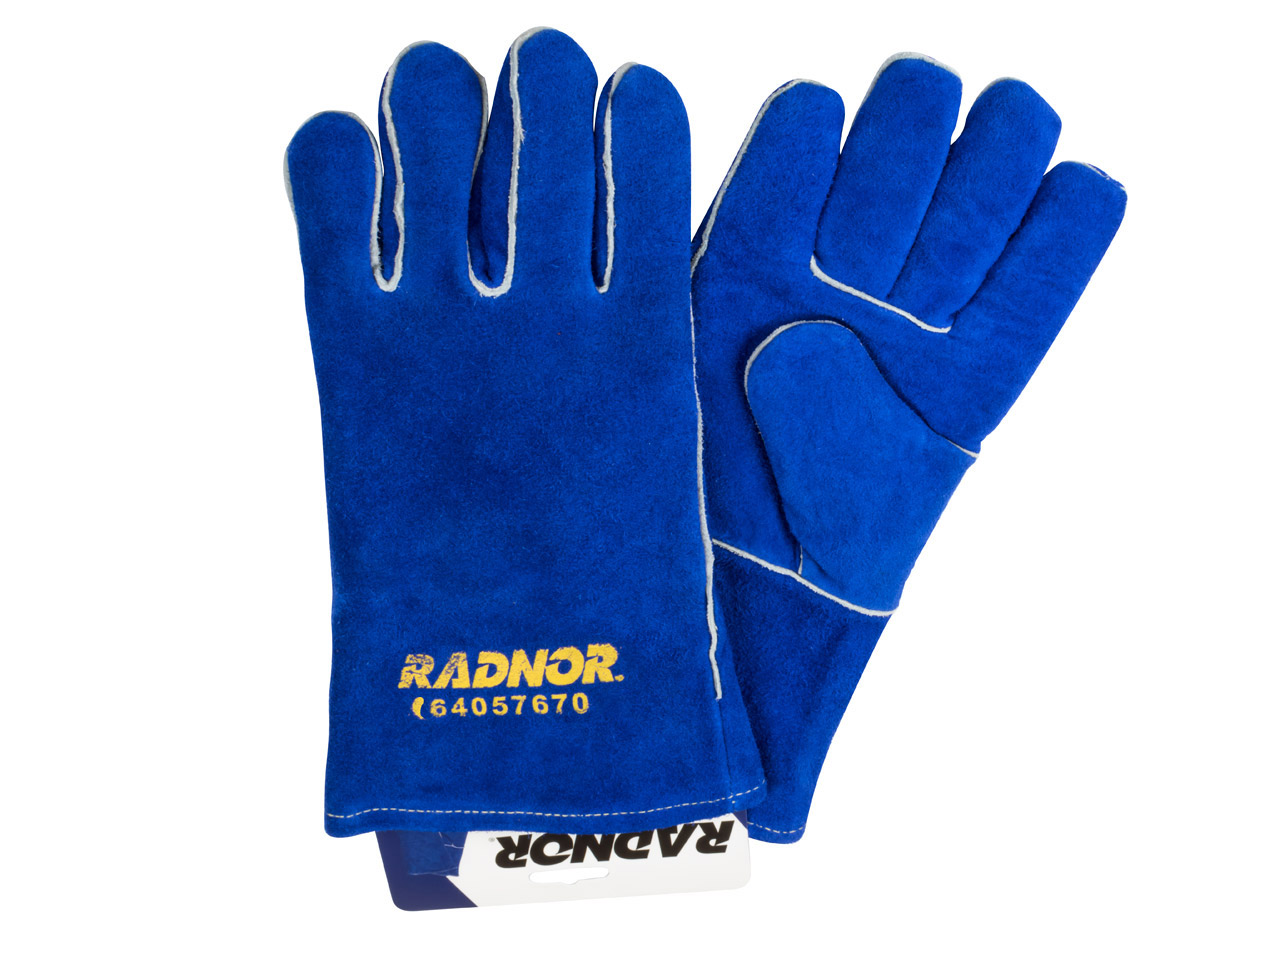 Radnor Heat-resistant Gloves Small